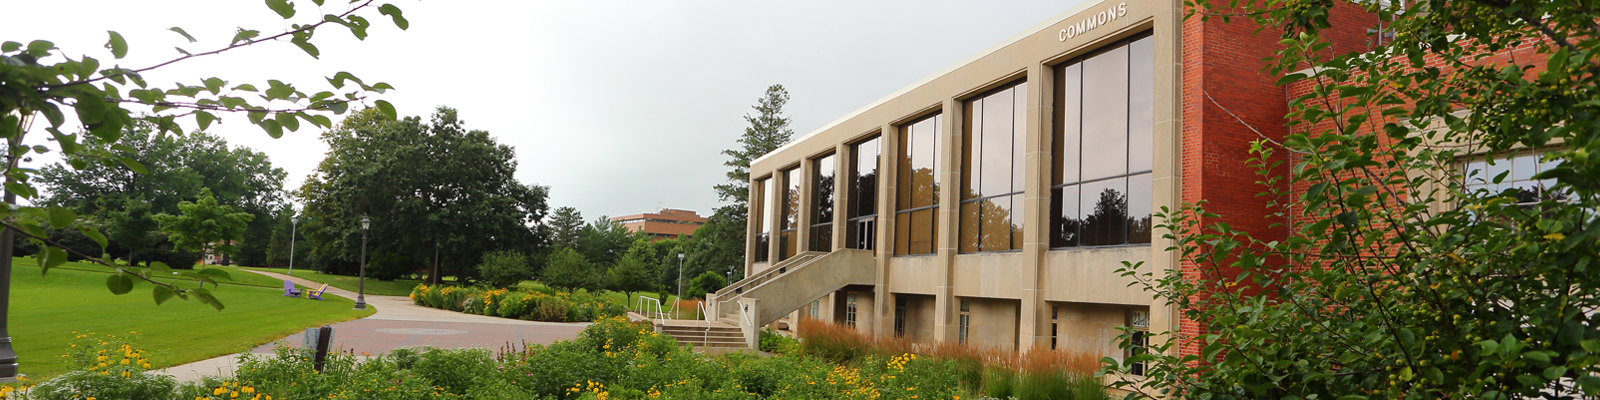 An exterior view of the Commons at the University of Northern Iowa